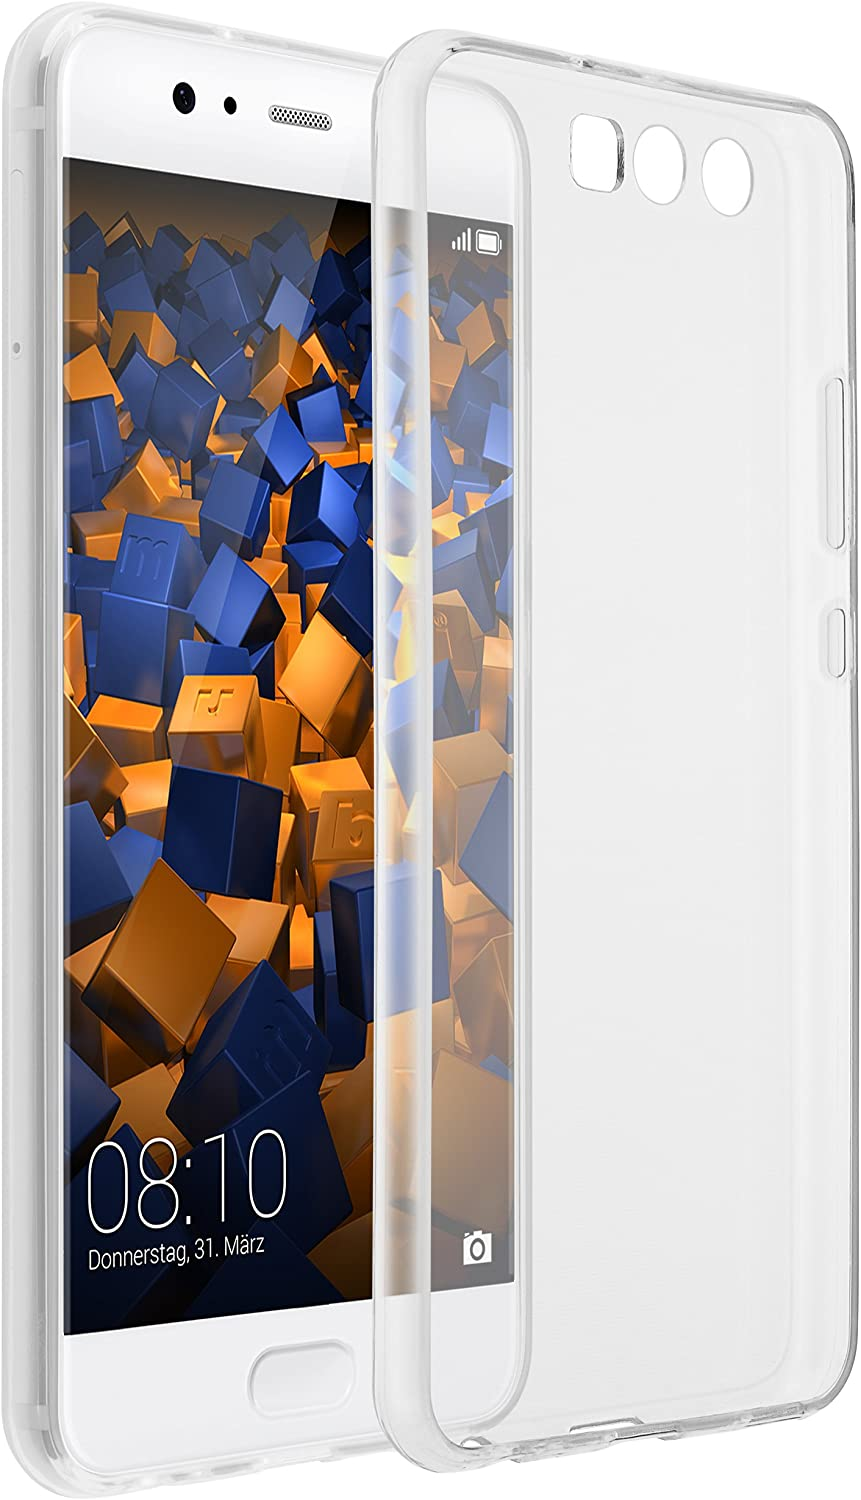 mumbi Ultra Slim Protective Mobile Phone Huawei High material T P10 for low-pricing Cover